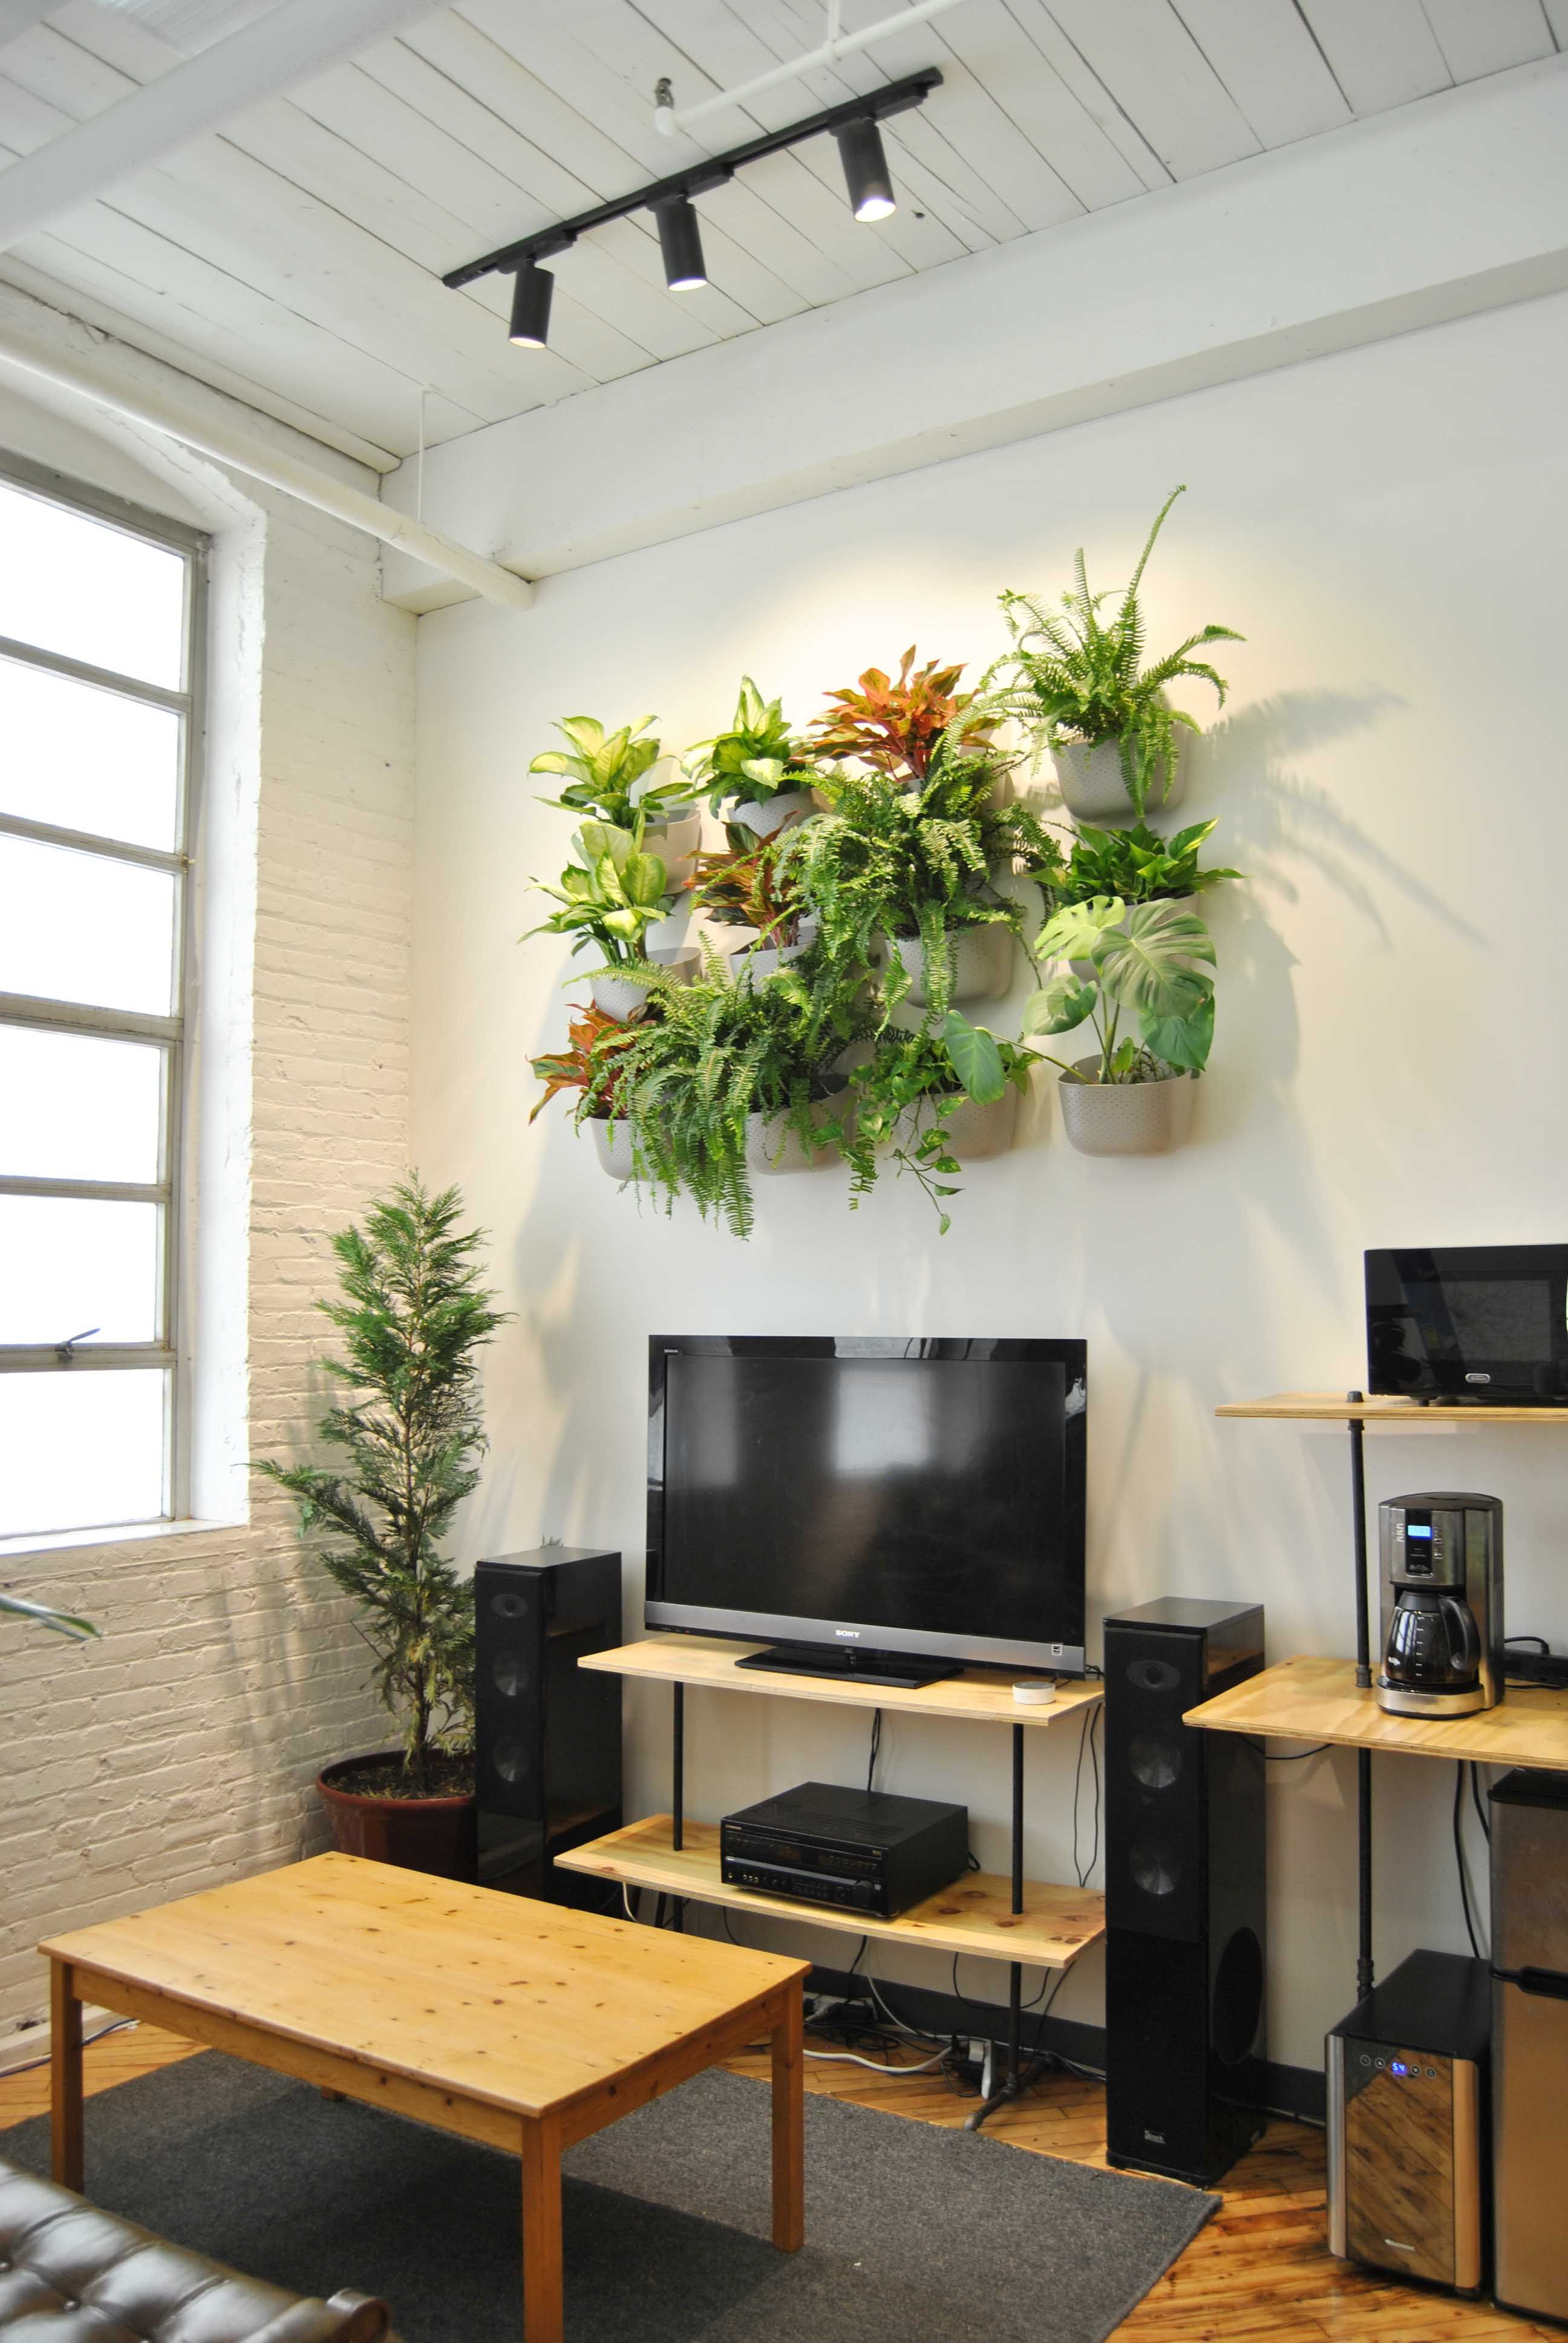 Grow Lights In Here Yup Indoor Plant Lights Living Green Wall Indoor Plant Wall